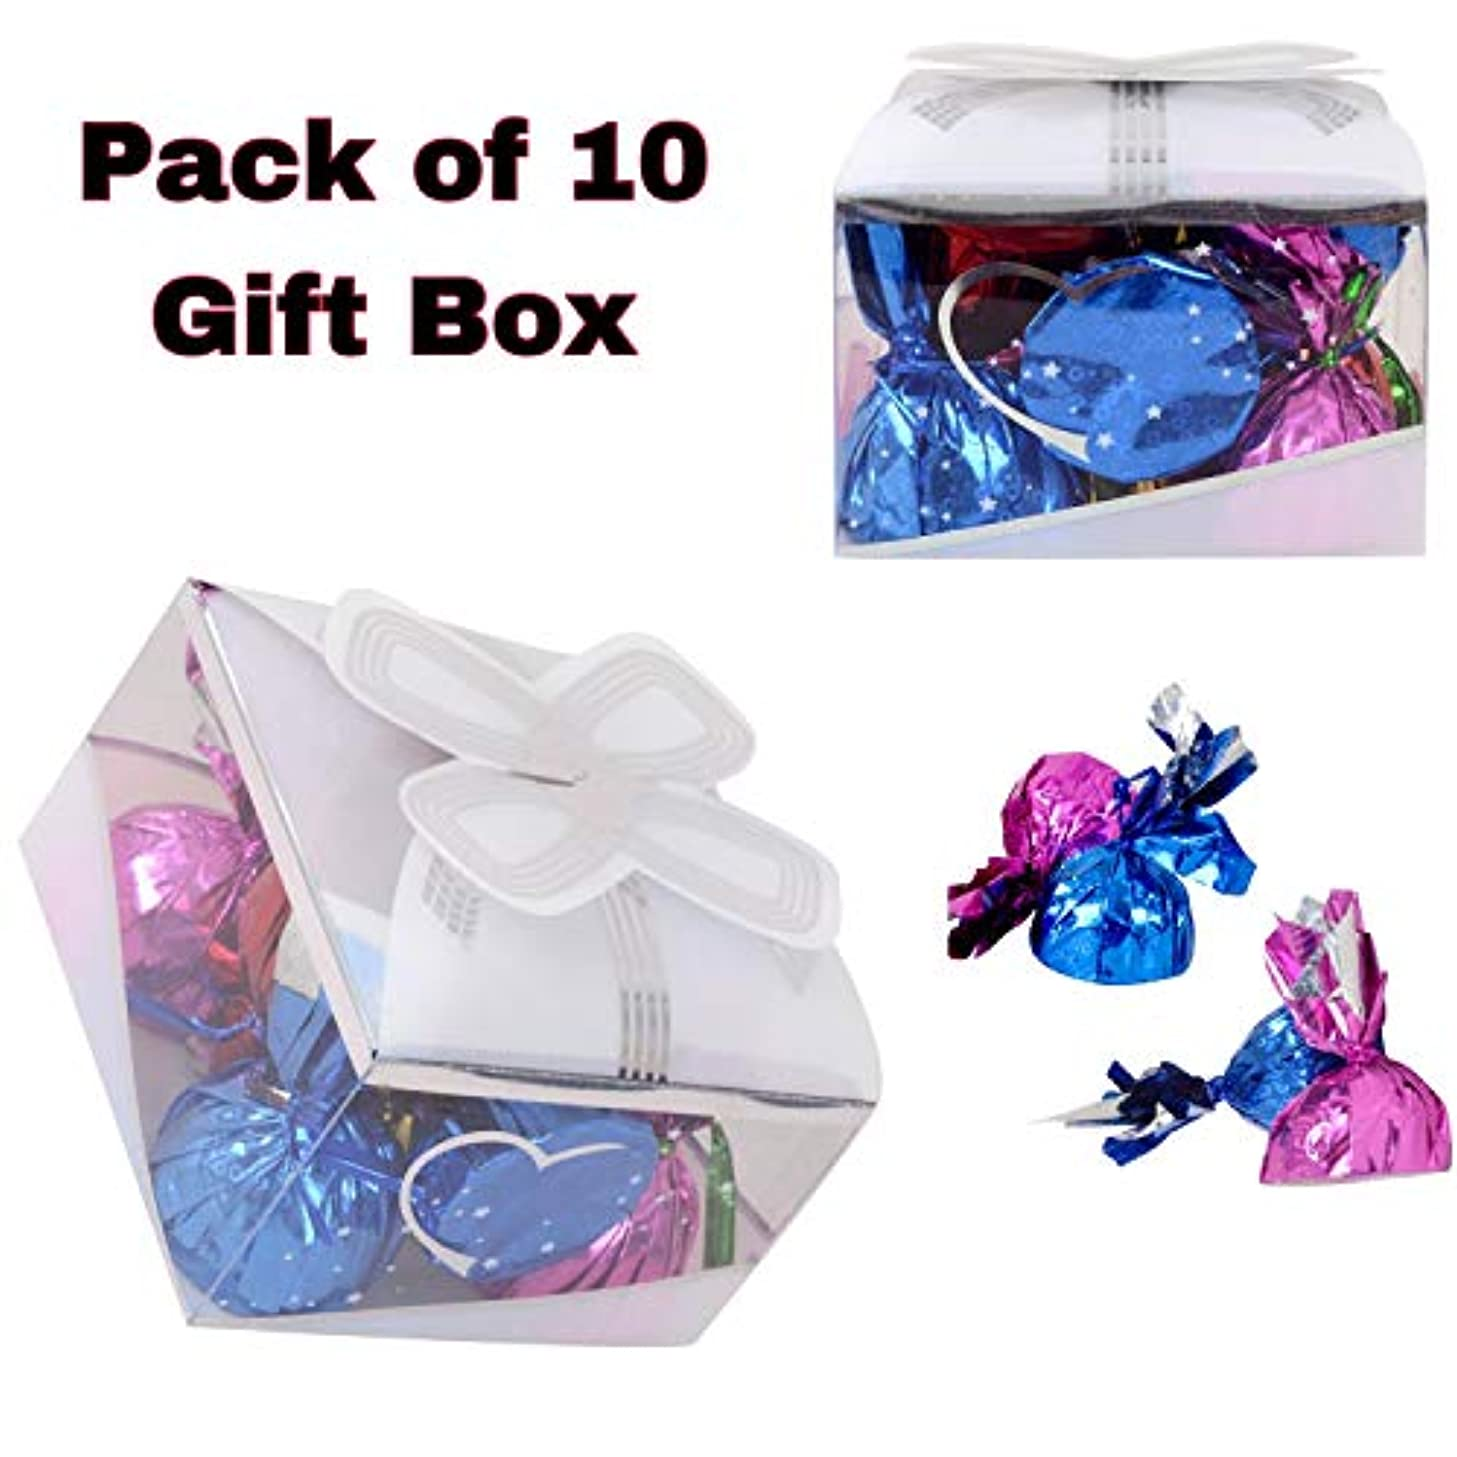 Gift Bags for Chocolate Packing,Coin Box,Candy Bag,Party Treat Bags,Goodie Bags,Chocolate Transparent Box,Party Favour Bag Wedding Box,Baby Shower Box,Jewellery Box,Bakery Boxes AHPB033